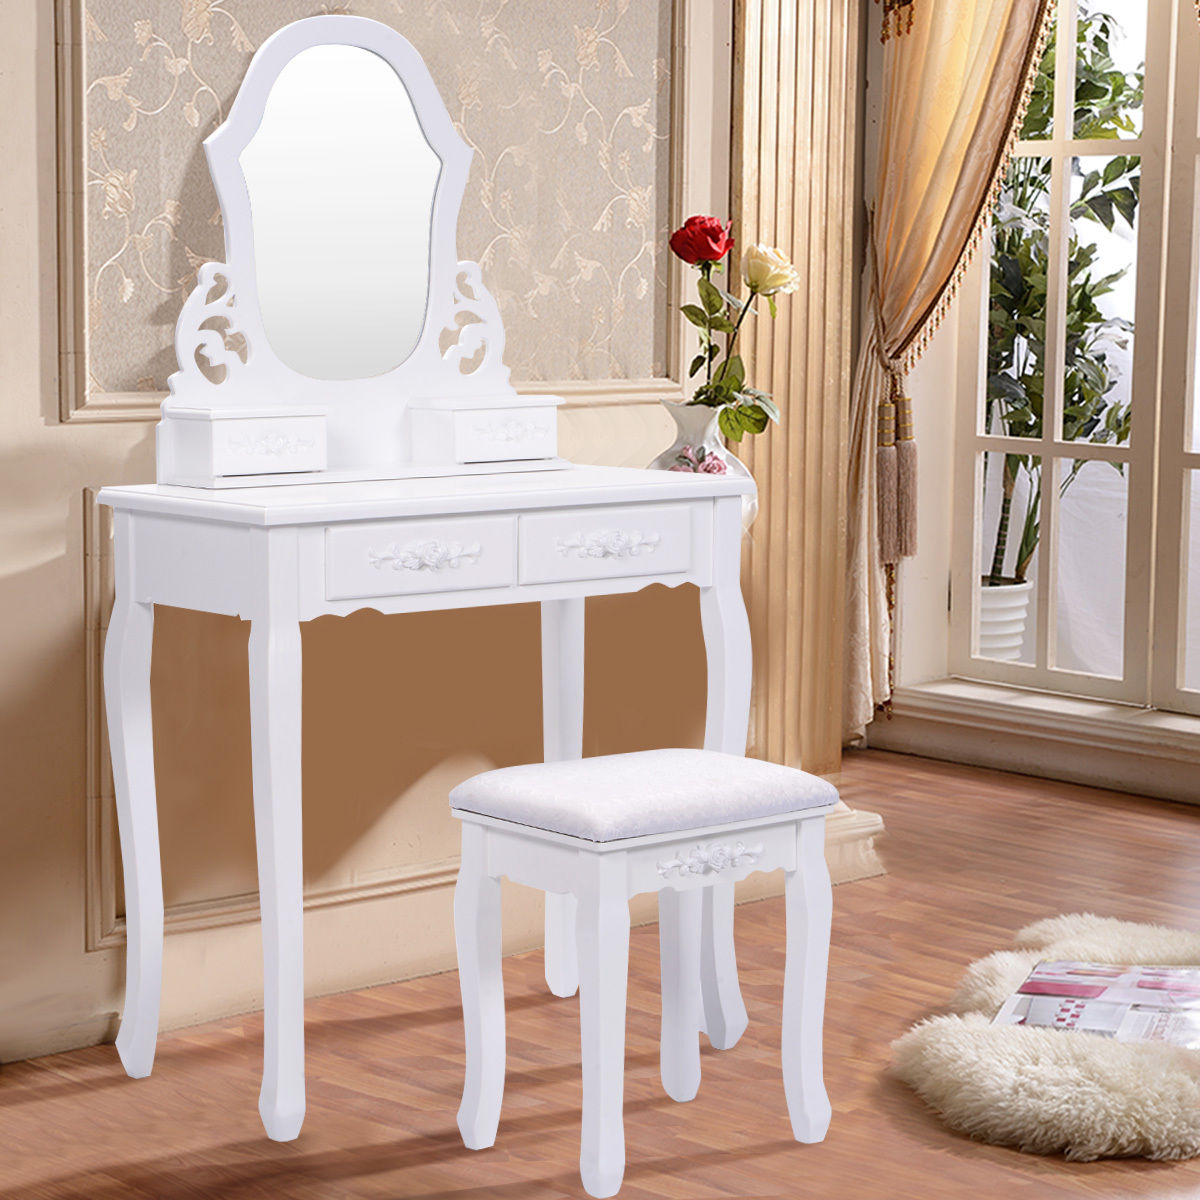 Costway White Vanity Jewelry Wooden Makeup Dressing Table Set W/Stool Mirror u0026 4 Drawer & Costway White Vanity Jewelry Wooden Makeup Dressing Table Set W ... islam-shia.org